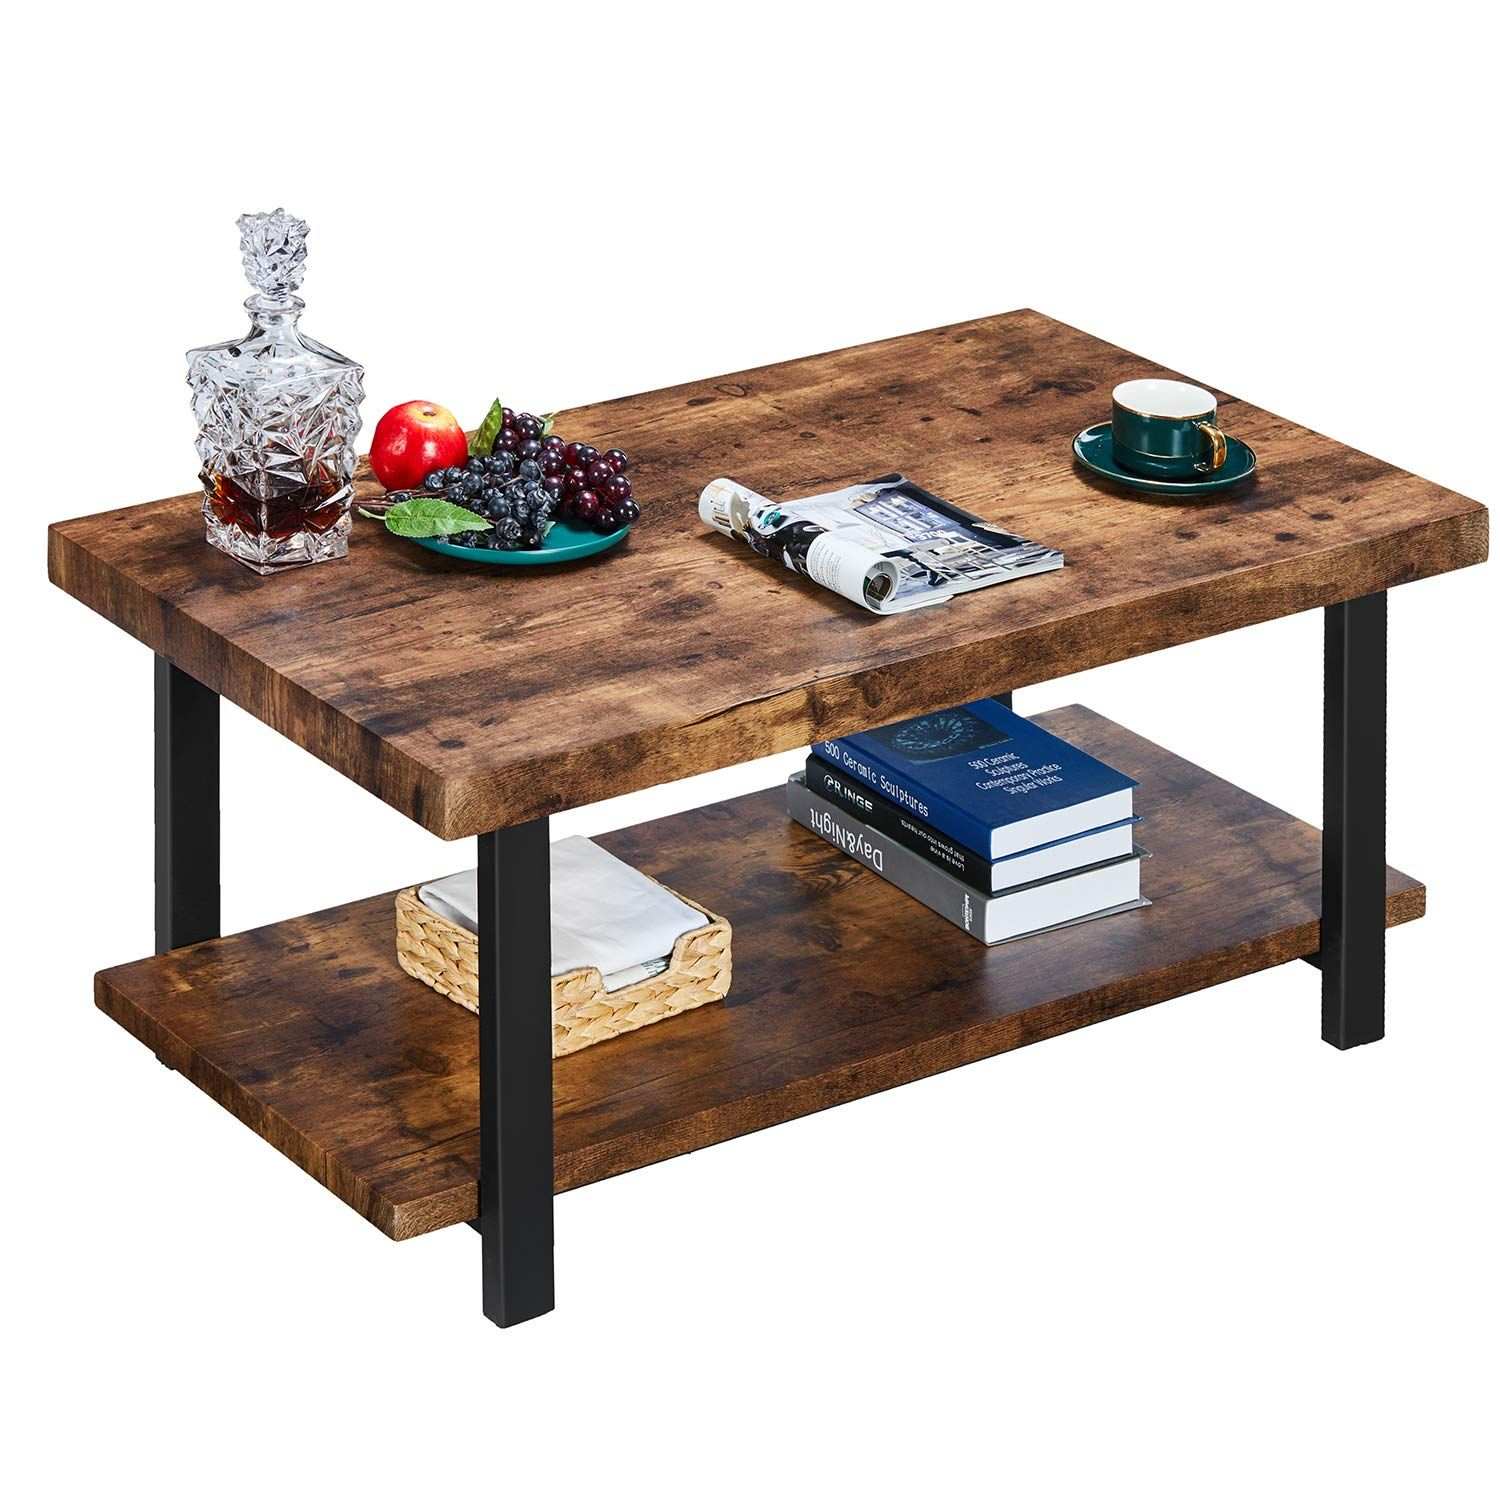 A Product Dimensionsa 18 5 H X 42 1 L X 22 W Item Weight Is 42lbs Top Weight Capacity 220lbs S Coffee Table Wood Coffee Table Rectangle Coffee Table [ 1500 x 1500 Pixel ]